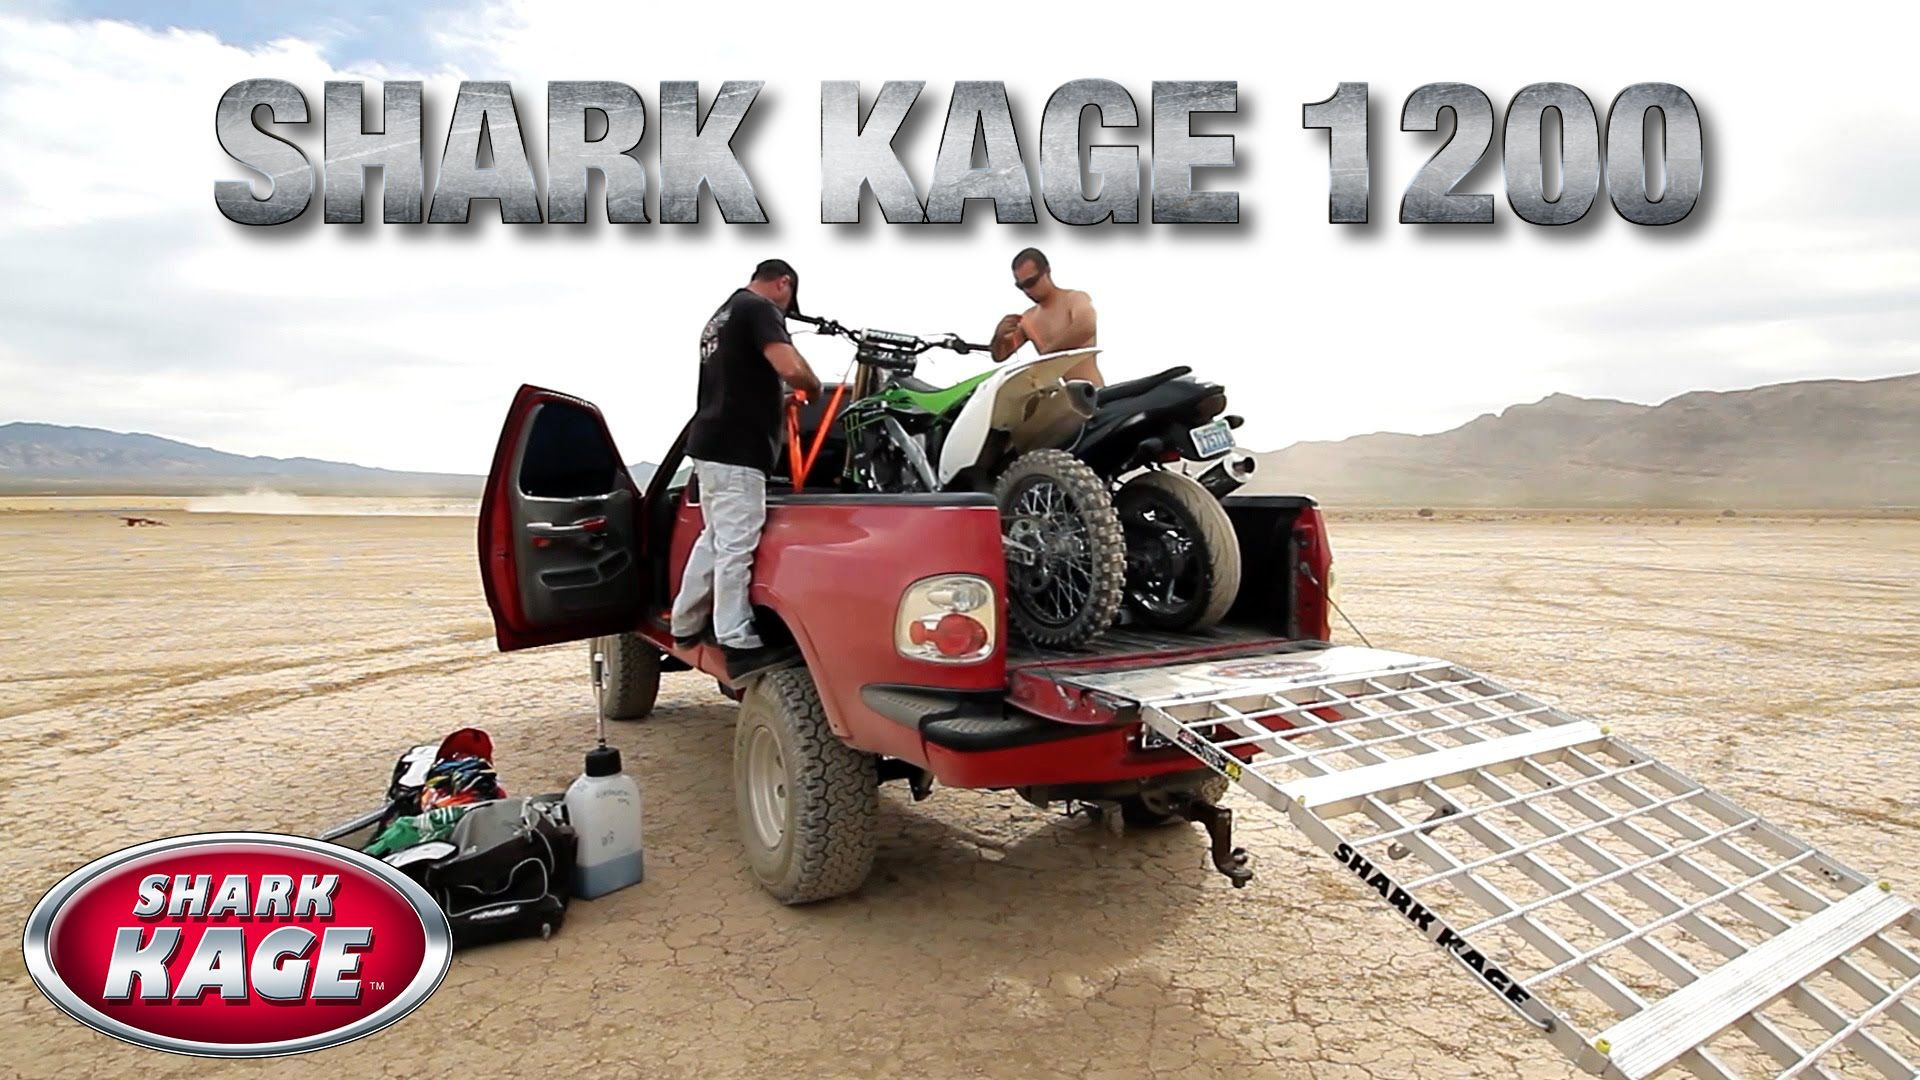 Shark Kage 1200 Aluminum Truck Ramps 1 In Safety And